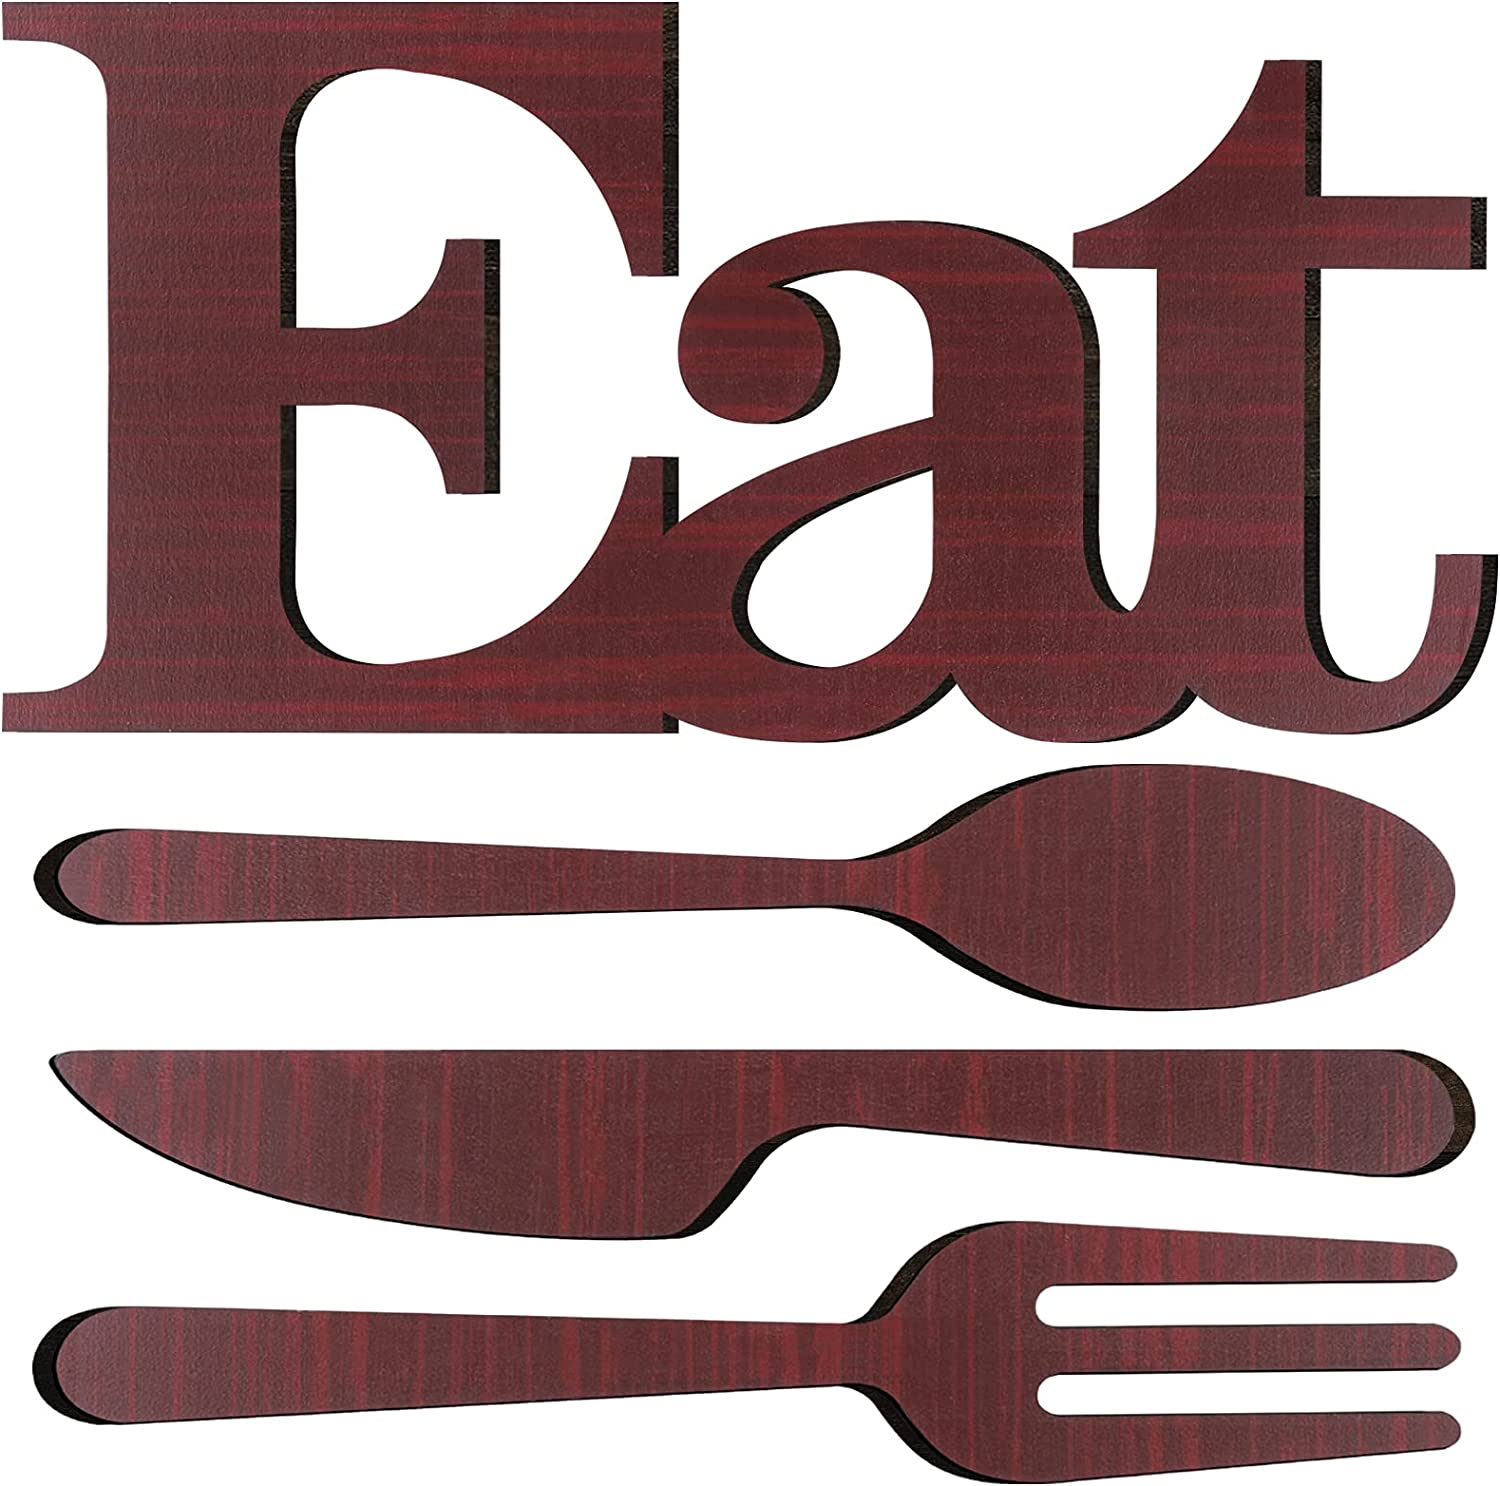 Ruisita Wooden Eat Sign and Cutlery Wall Decor Decorative Hanging Wooden Letters Wall Art Farmhouse Rustic Kitchen Wall Decor Eat Sign for Home, Kitchen Decoration (Dark Red)